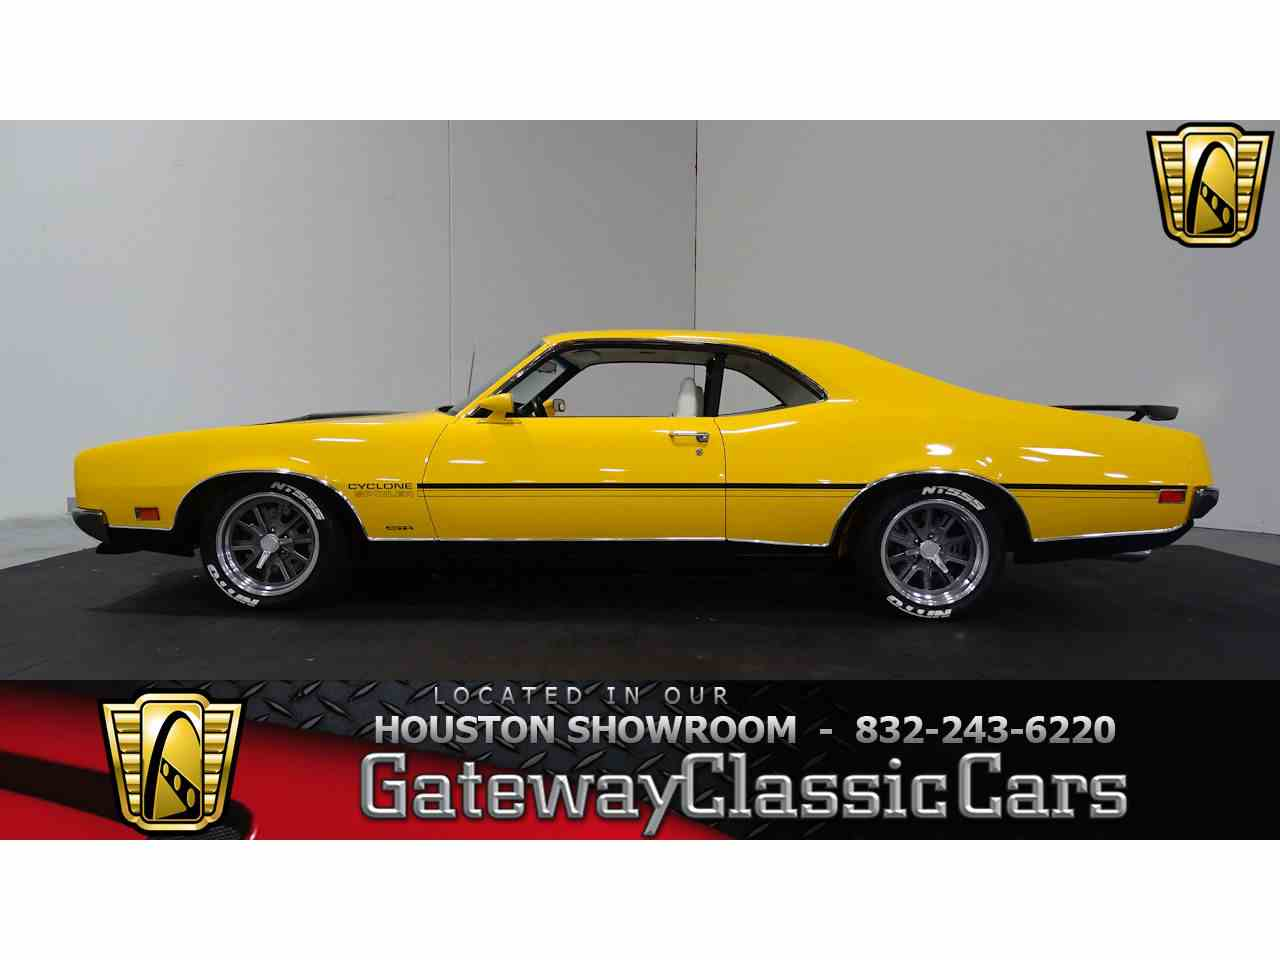 1972 mercury montego n code 429 restomod motorcycle custom - 1970 Mercury Cyclone 1039580